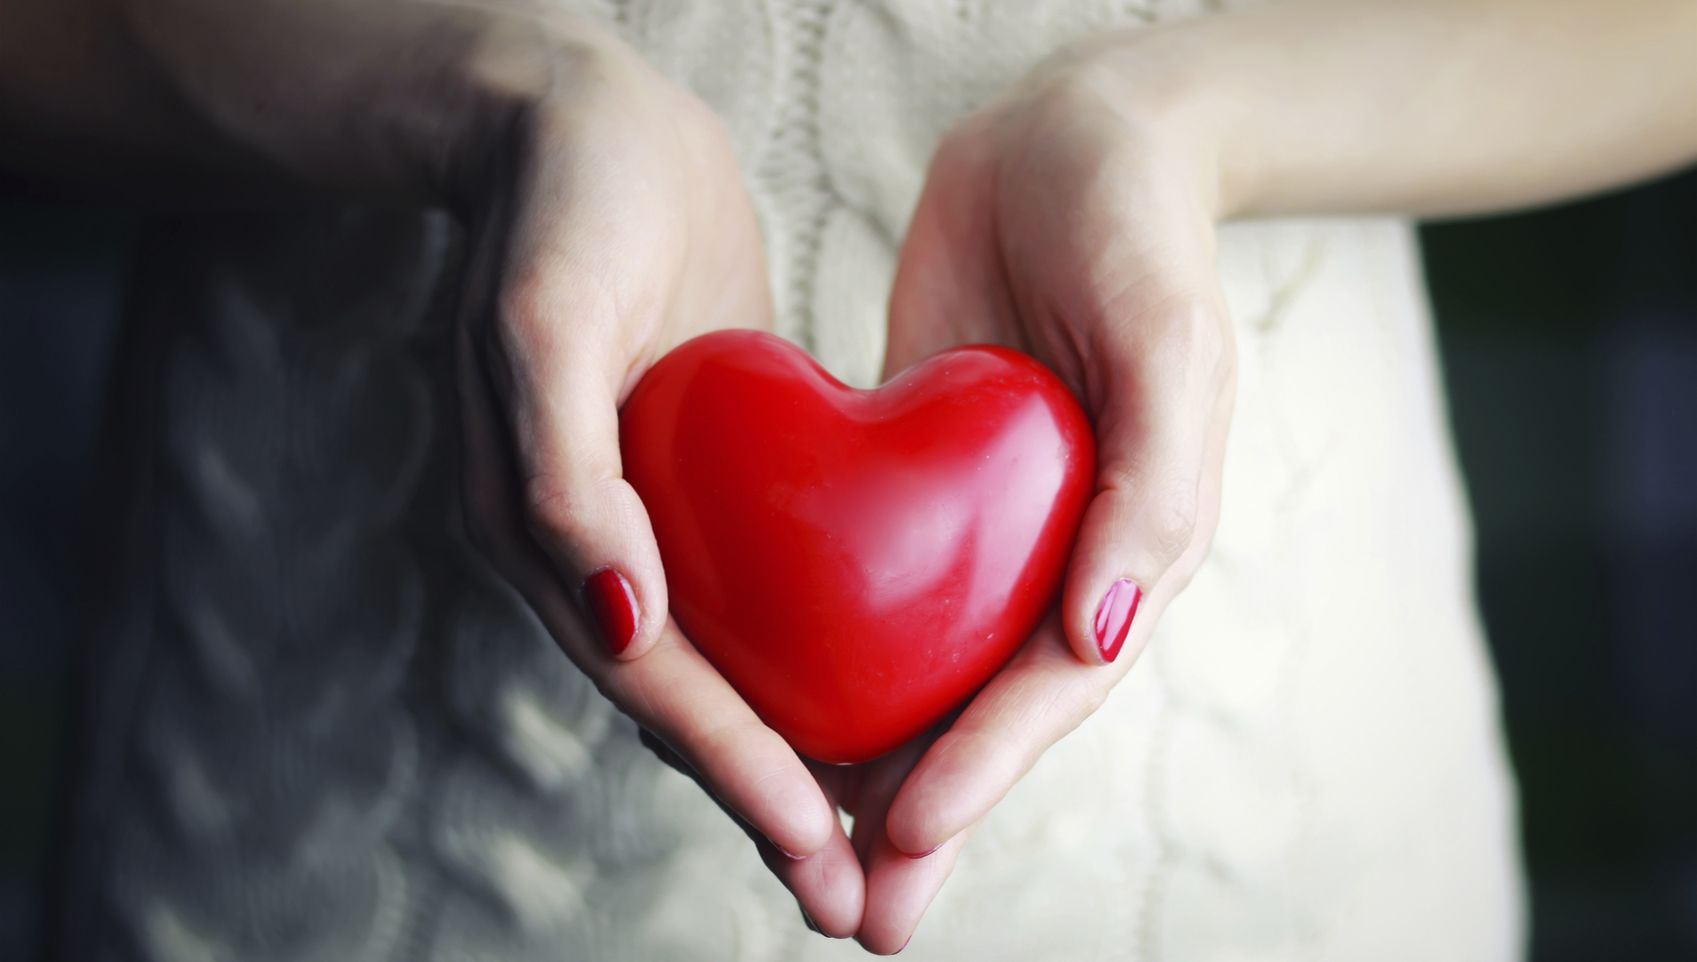 6 Unexpected Effects of Heart Disease